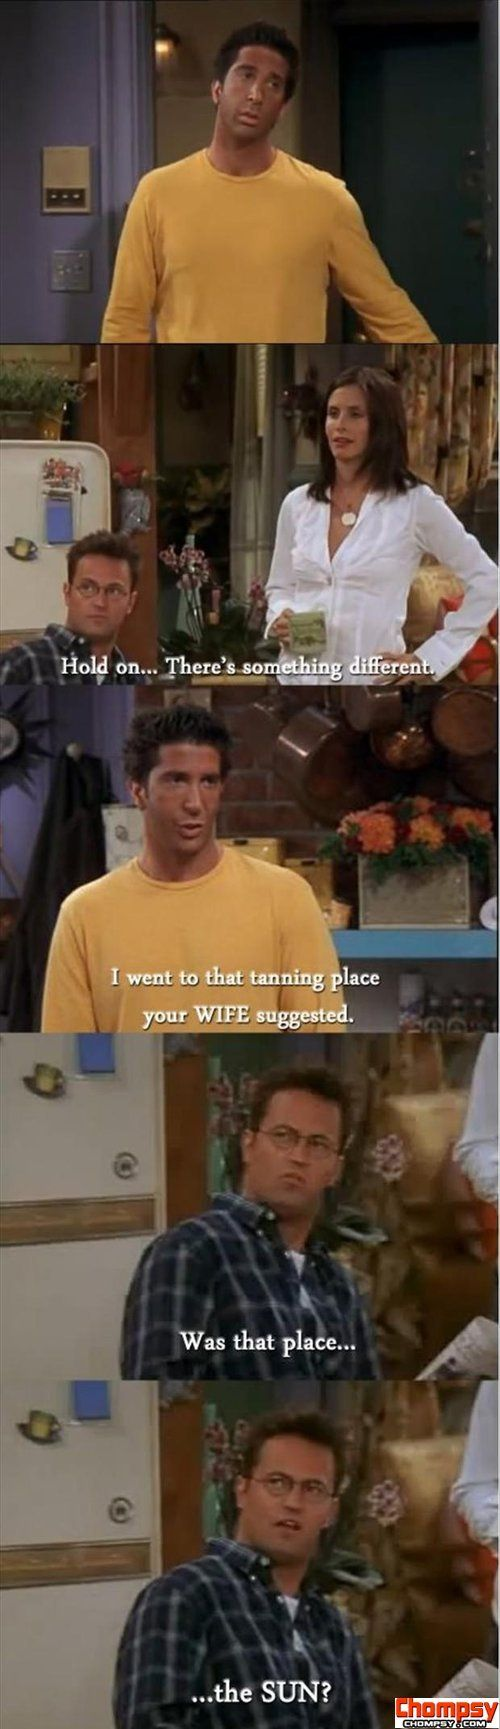 funny friends tv show quotes tanning beds